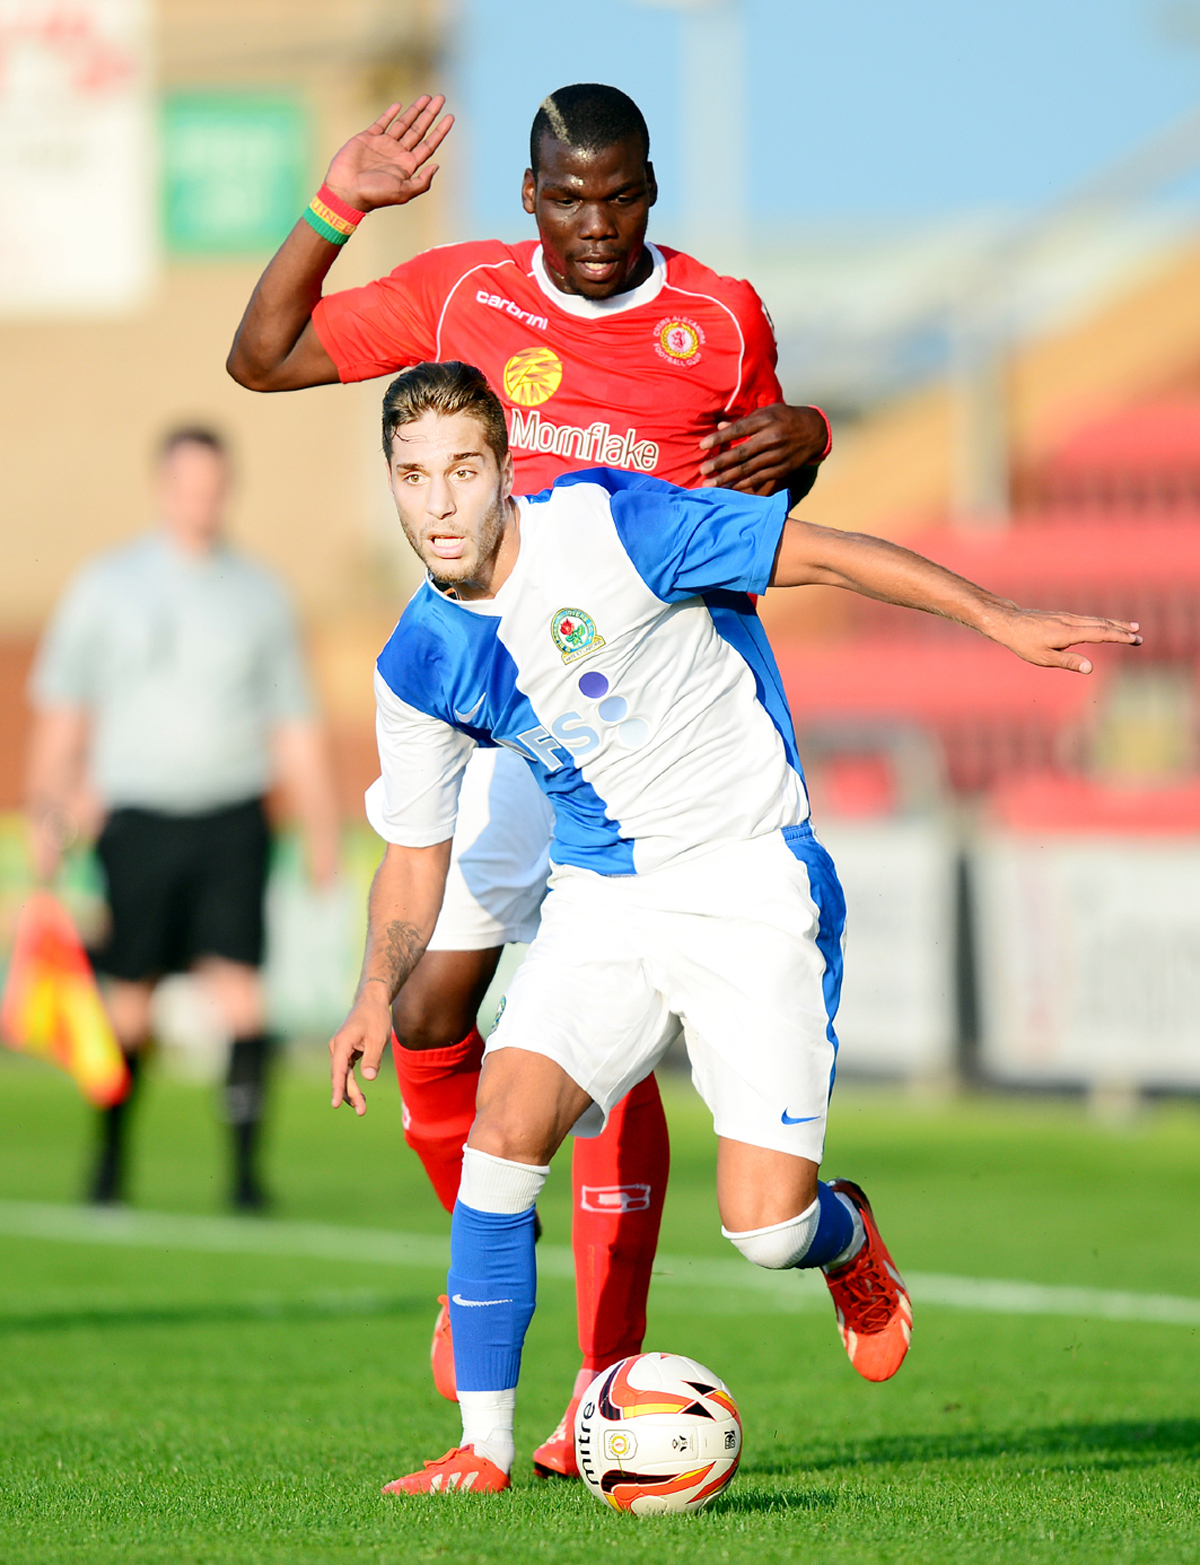 Ruben Rochina scored a brace as Rovers got their pre-season off to a winning start